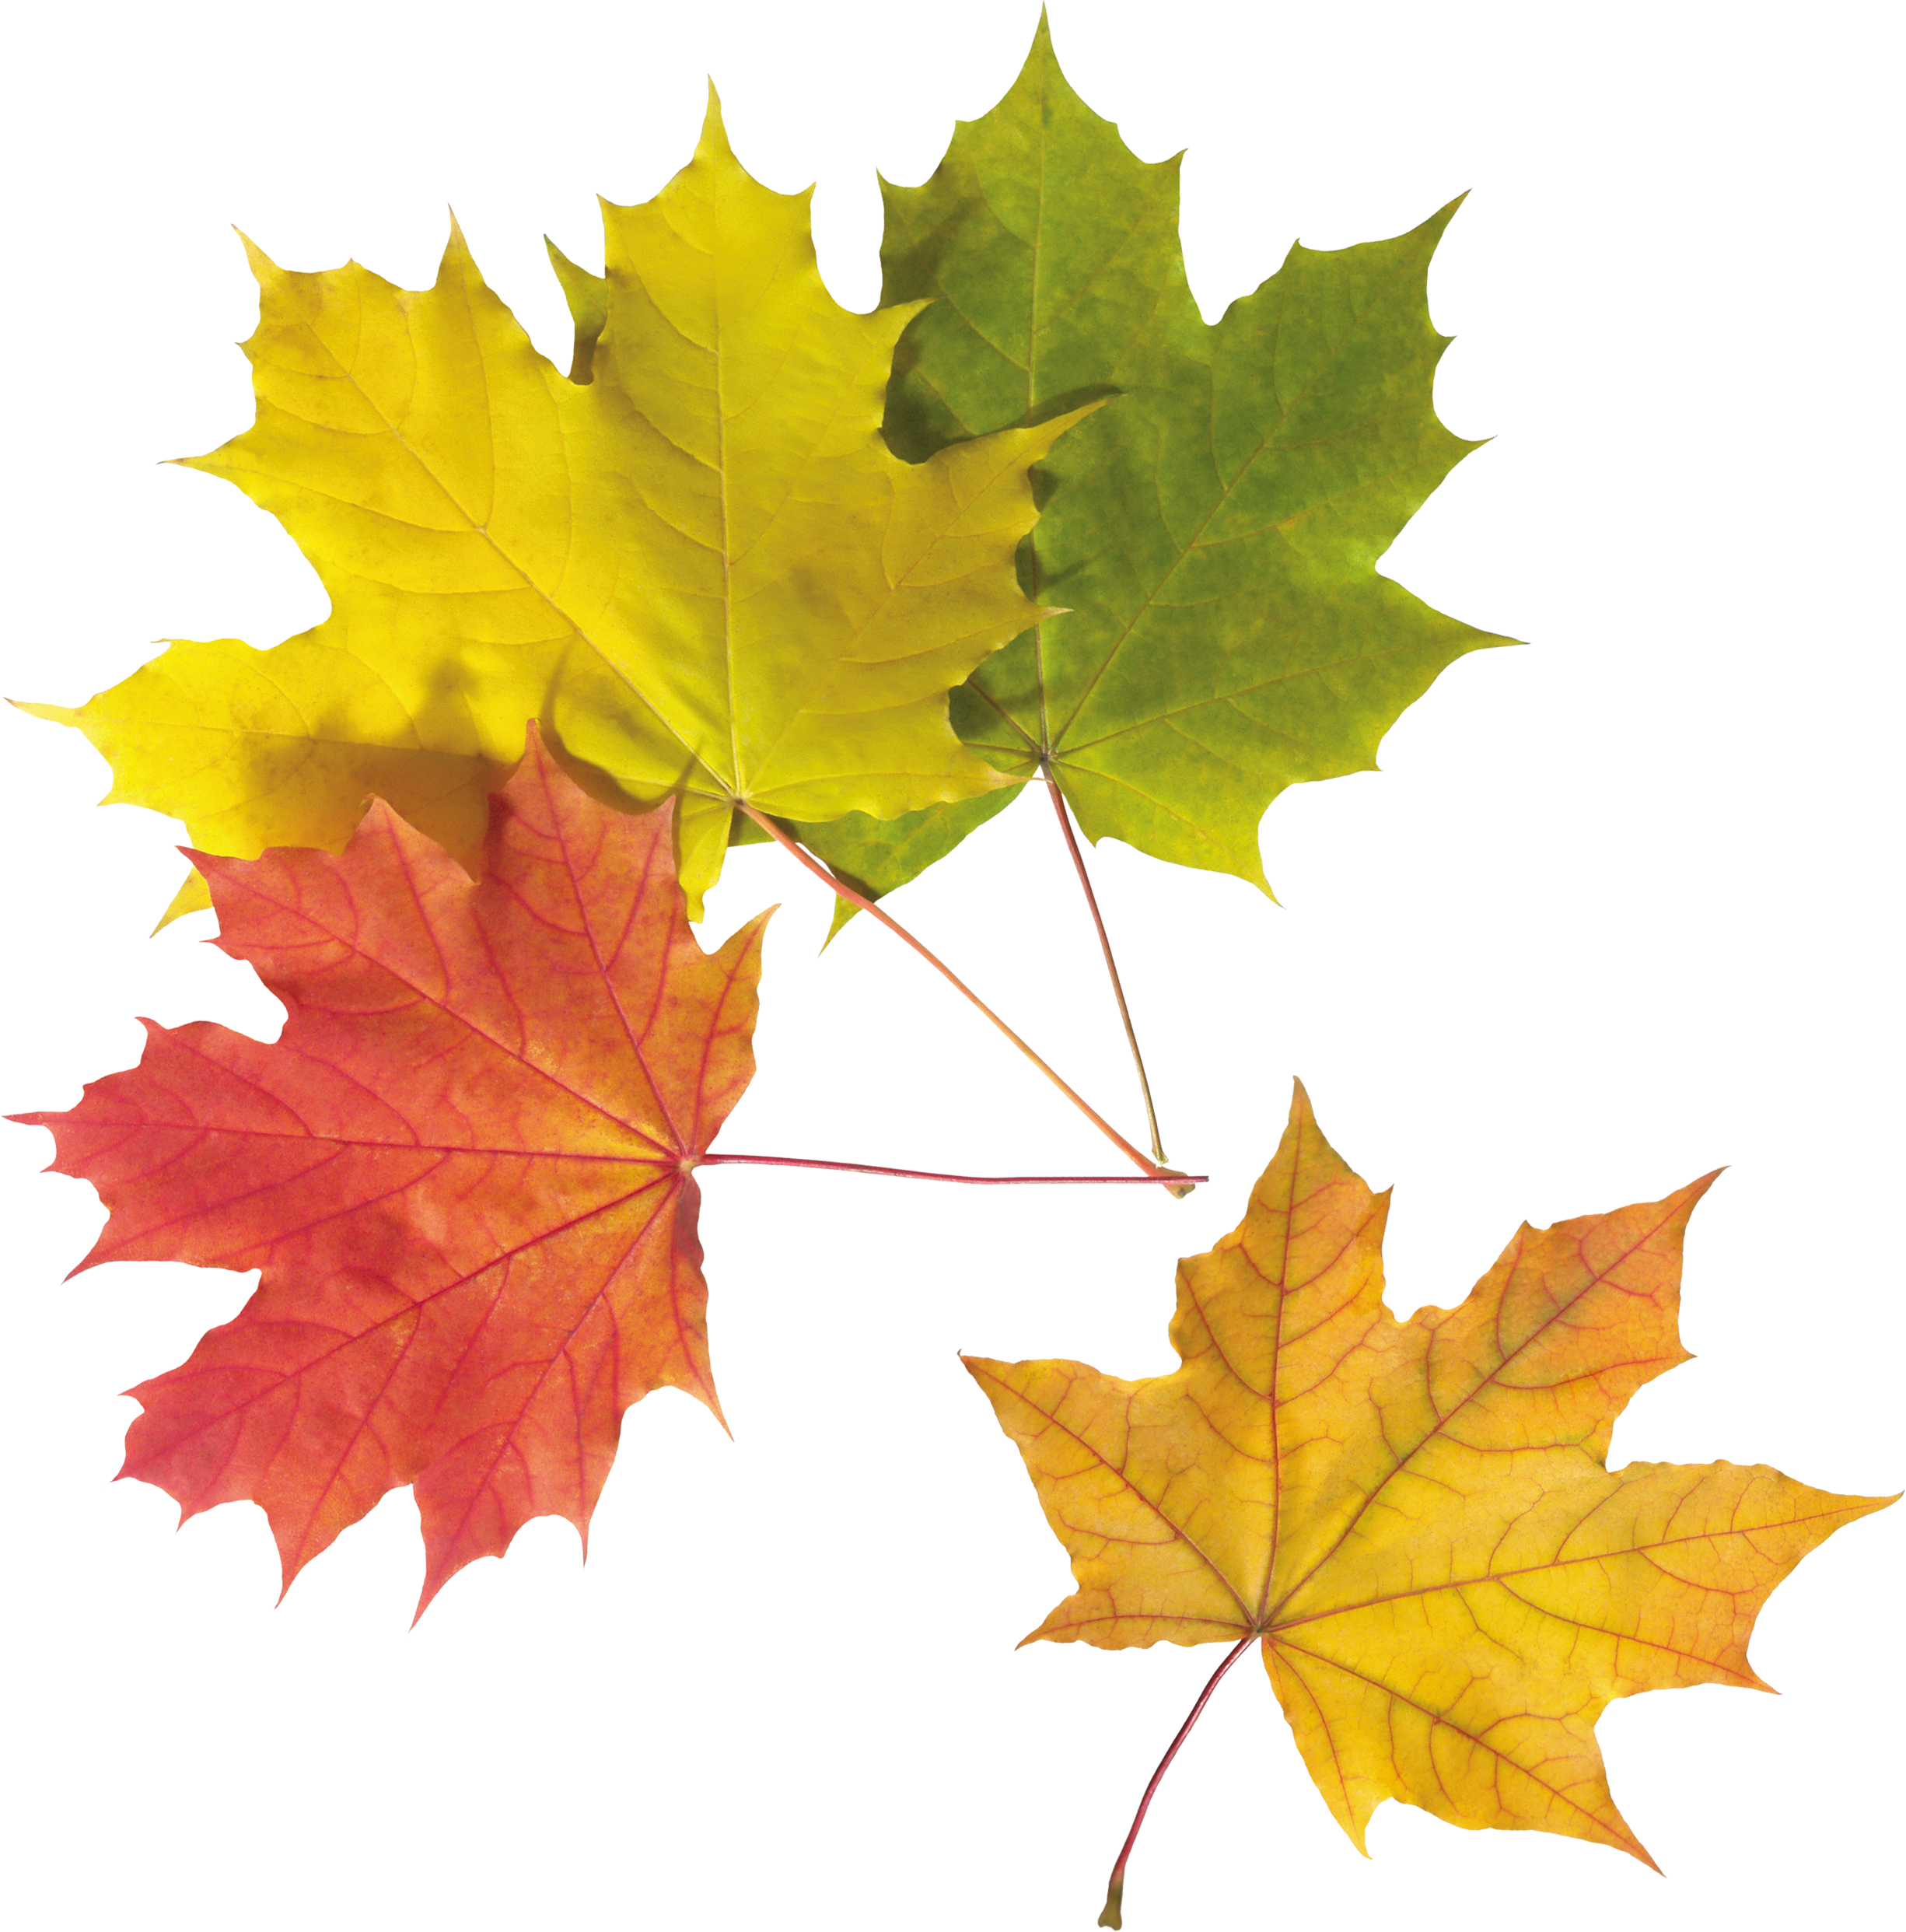 Leaf png. Autumn leaves images free